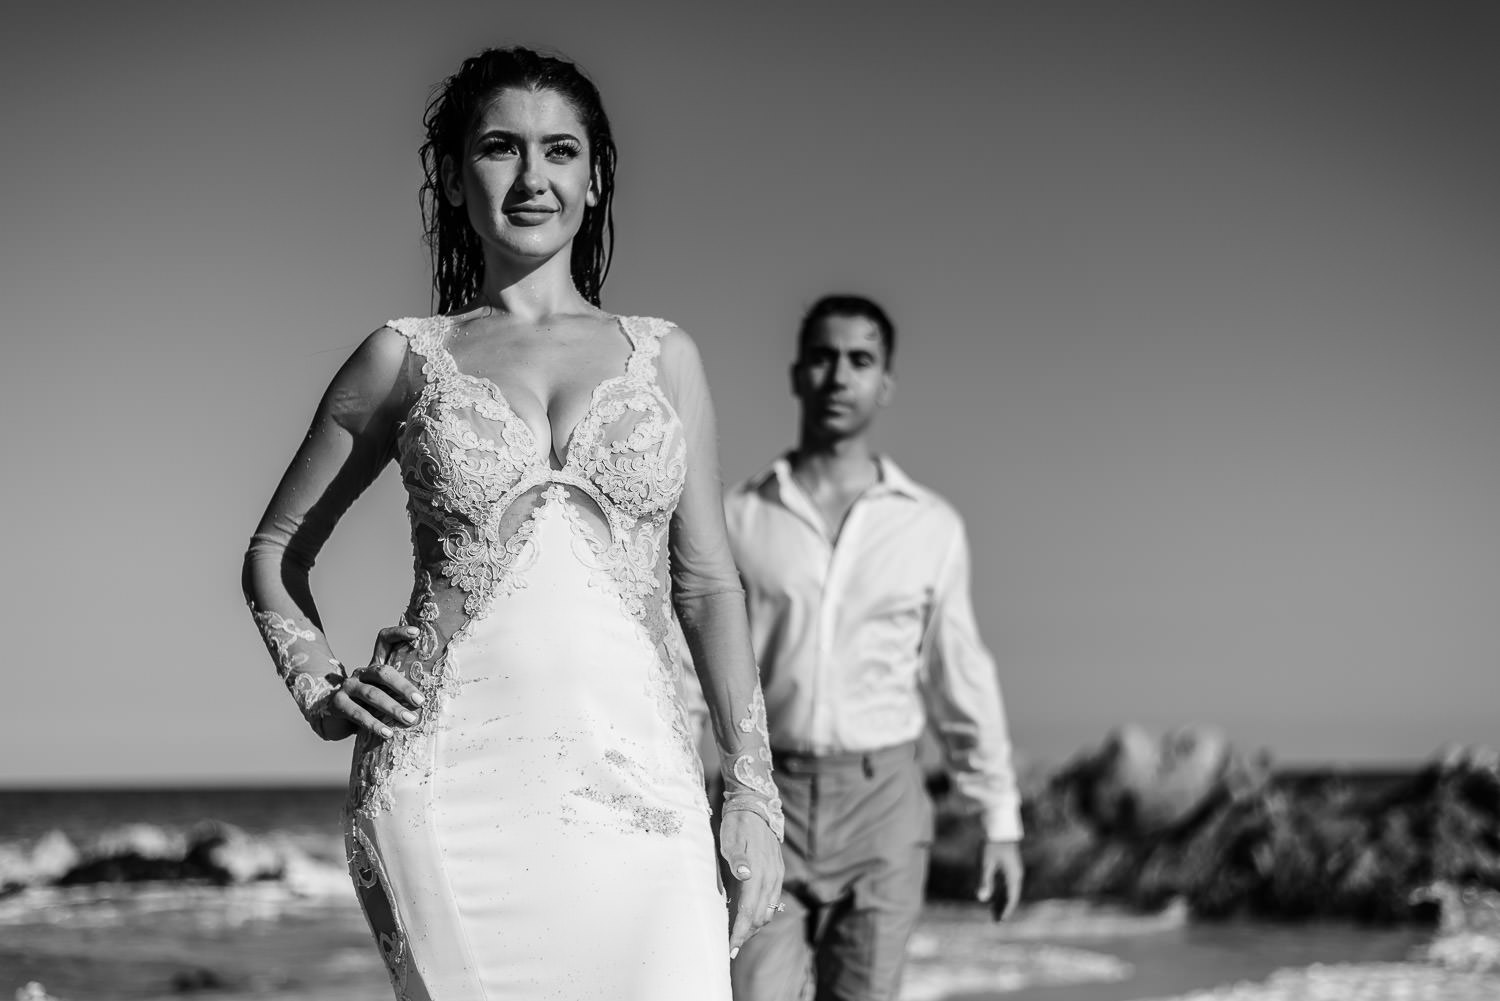 Trash-the-dress-los-cabos-43.JPG